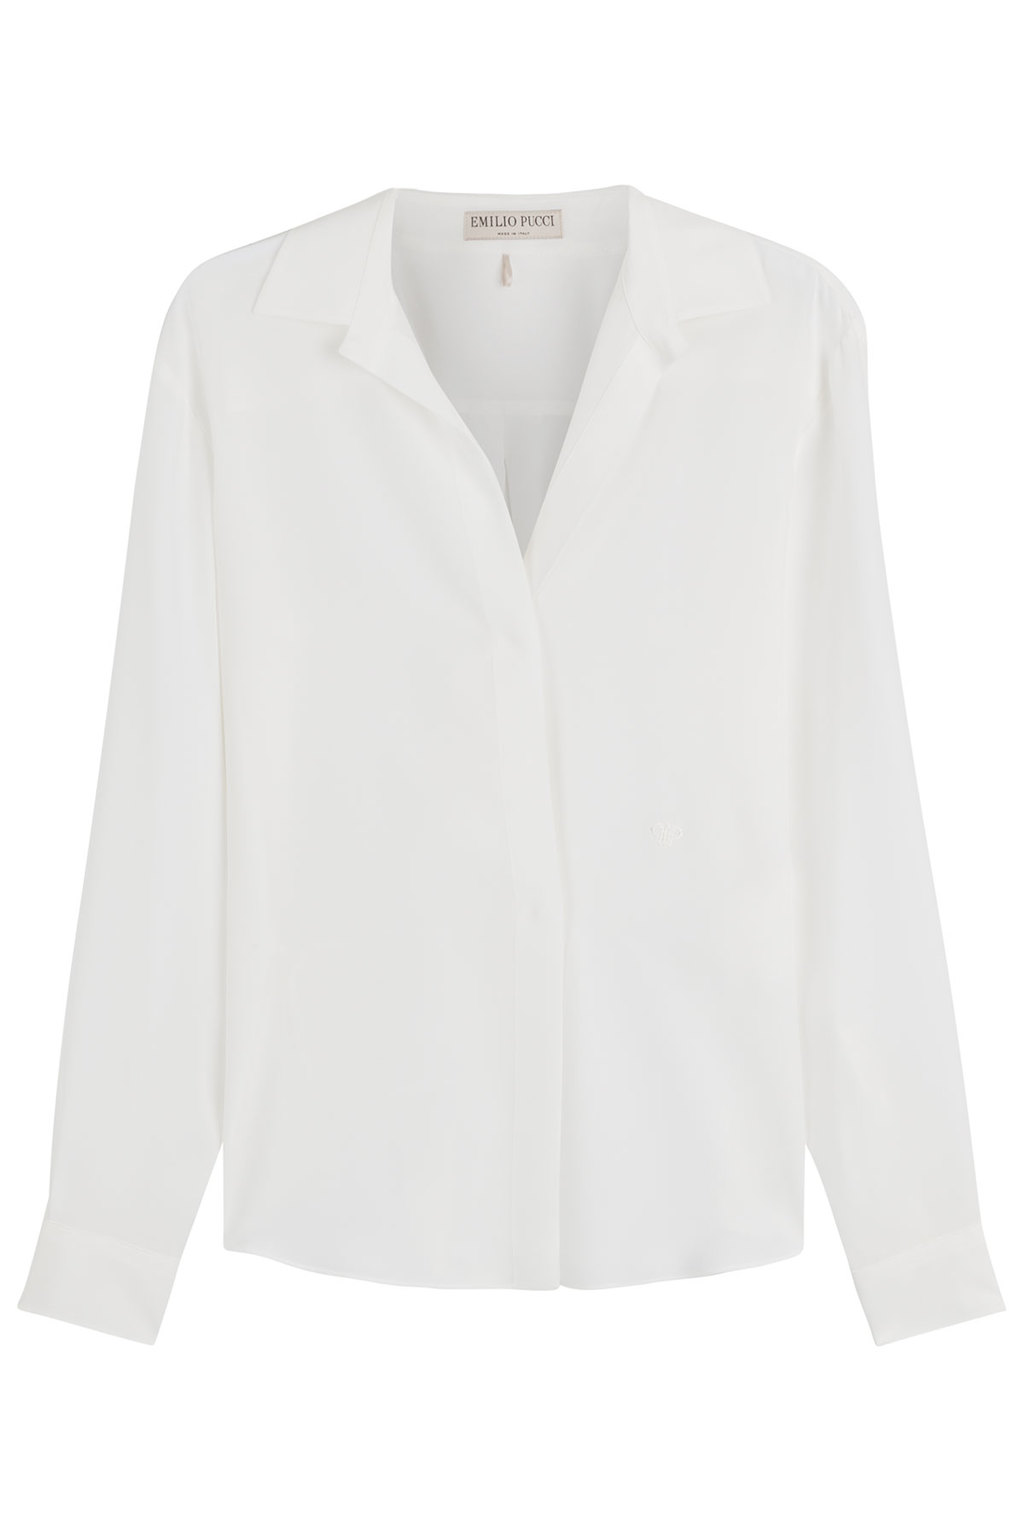 Silk Blouse - neckline: shirt collar/peter pan/zip with opening; pattern: plain; style: blouse; predominant colour: white; occasions: evening; length: standard; fibres: silk - 100%; fit: body skimming; sleeve length: long sleeve; sleeve style: standard; texture group: silky - light; pattern type: fabric; season: s/s 2016; wardrobe: event